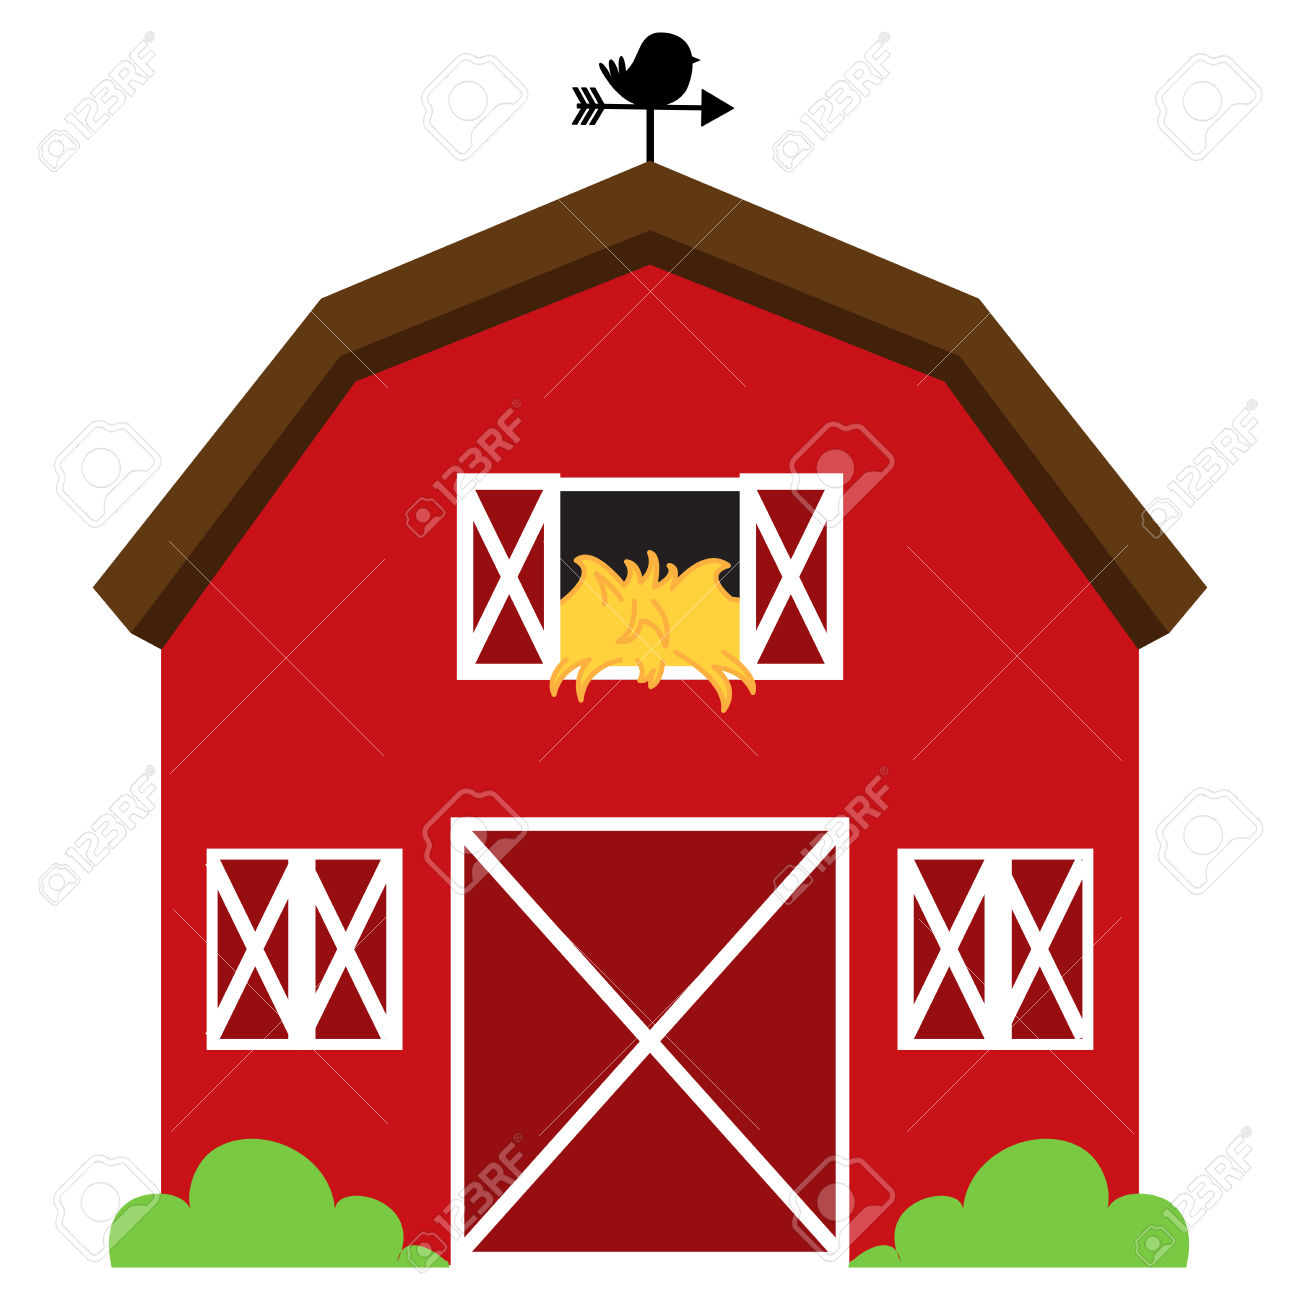 Barn Big Red